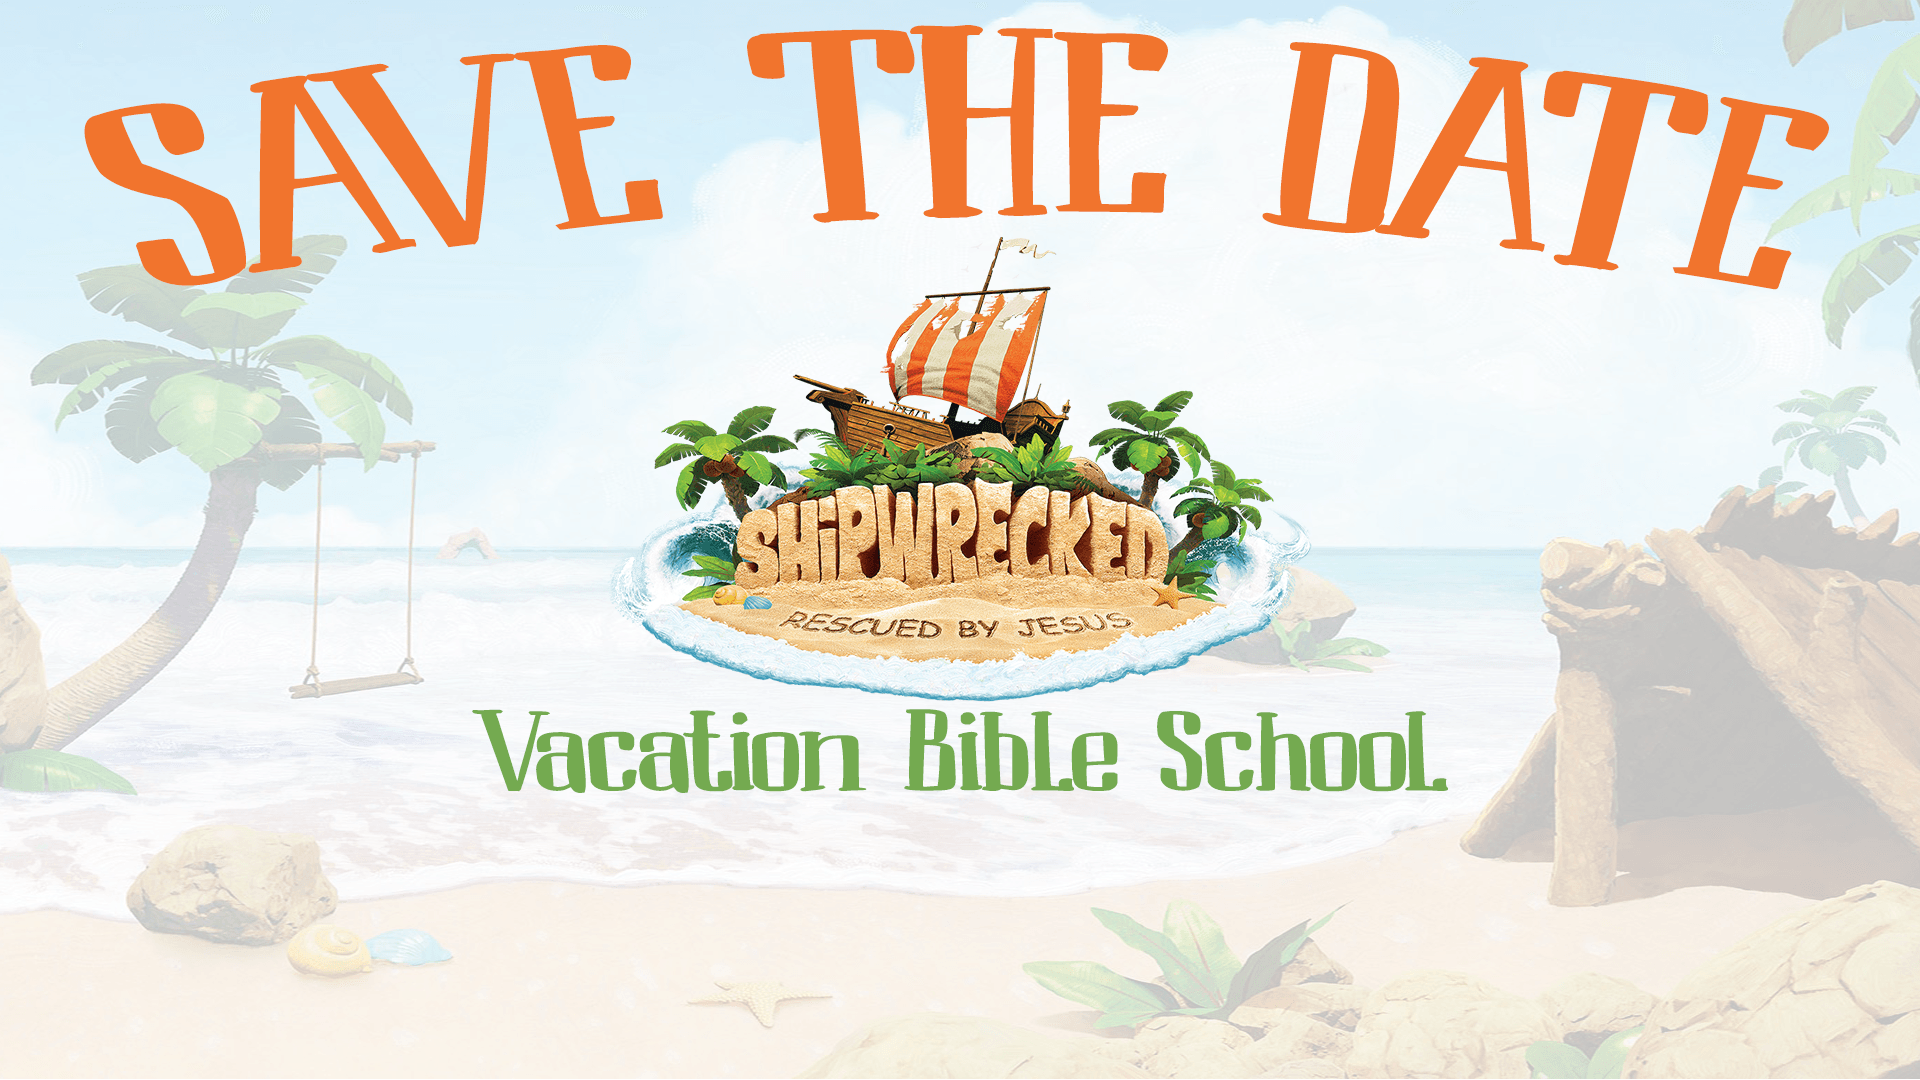 Shipwrecked VBS Save the Date FB Event 3